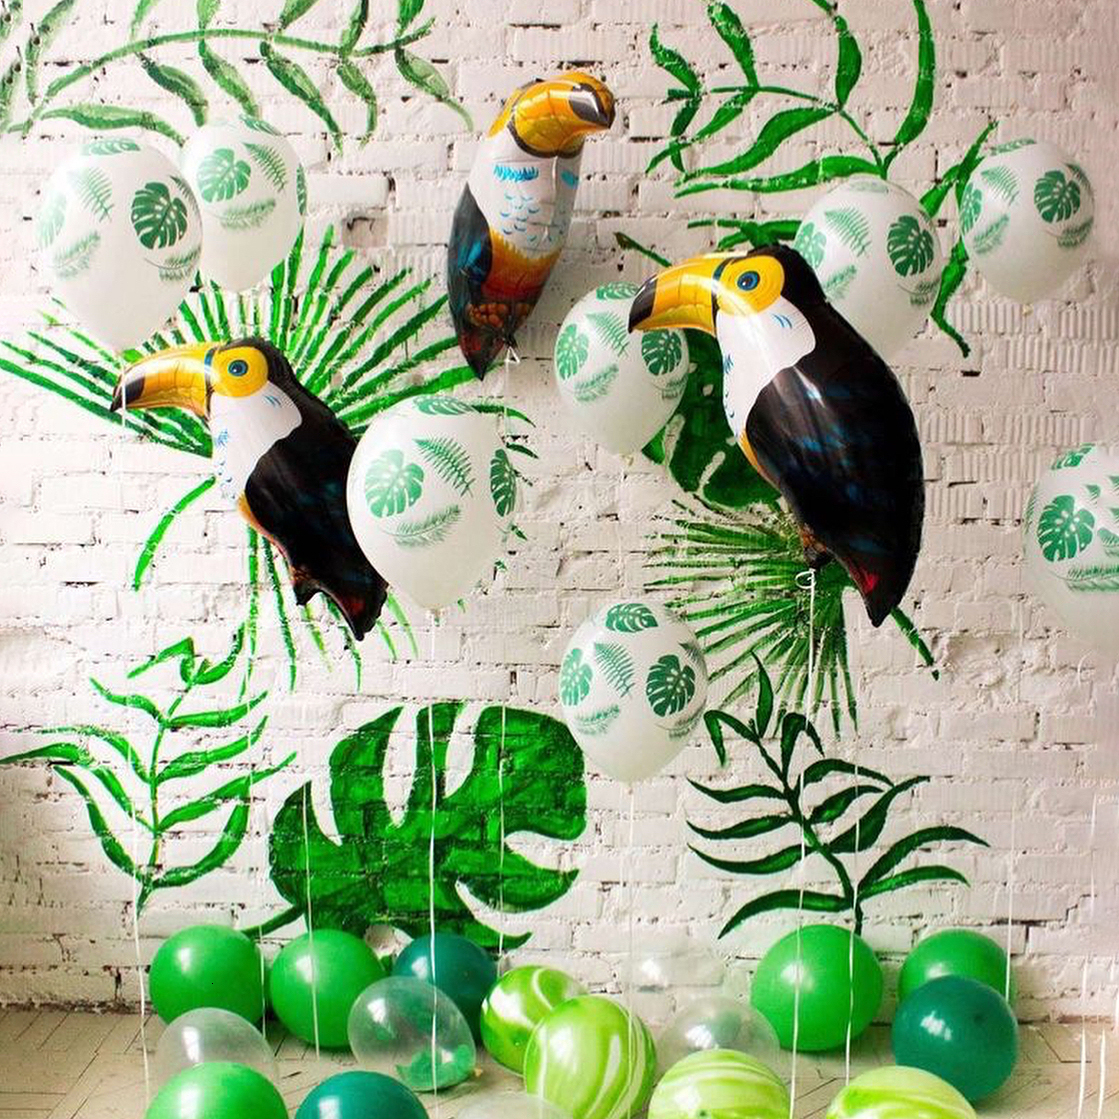 Jungle Party Dinosaurs Balloons Safari Party Animal Baloons Baby Shower Boy Birthday Party Decorations Banner Kdis Favors Ballon